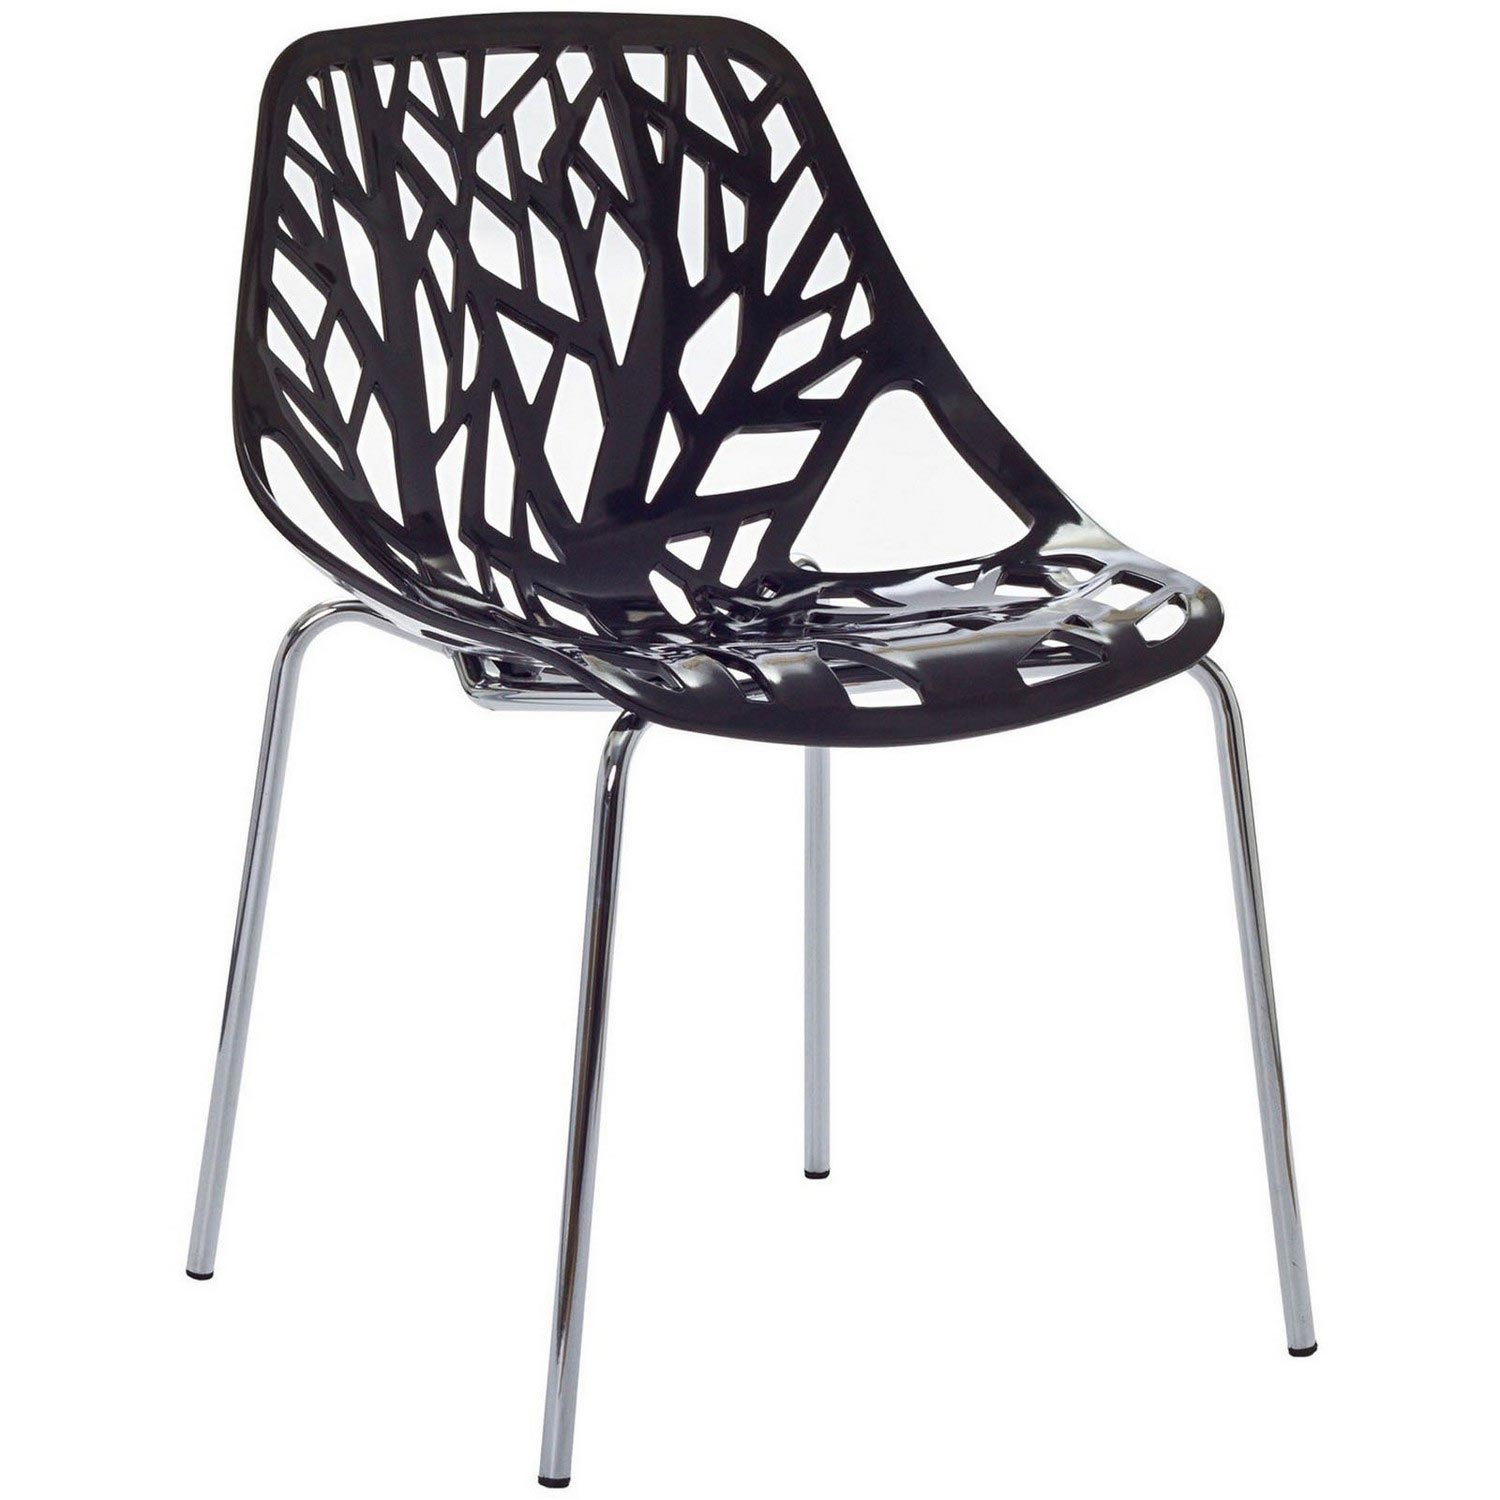 Modway Stencil Dining Side Chair - Black